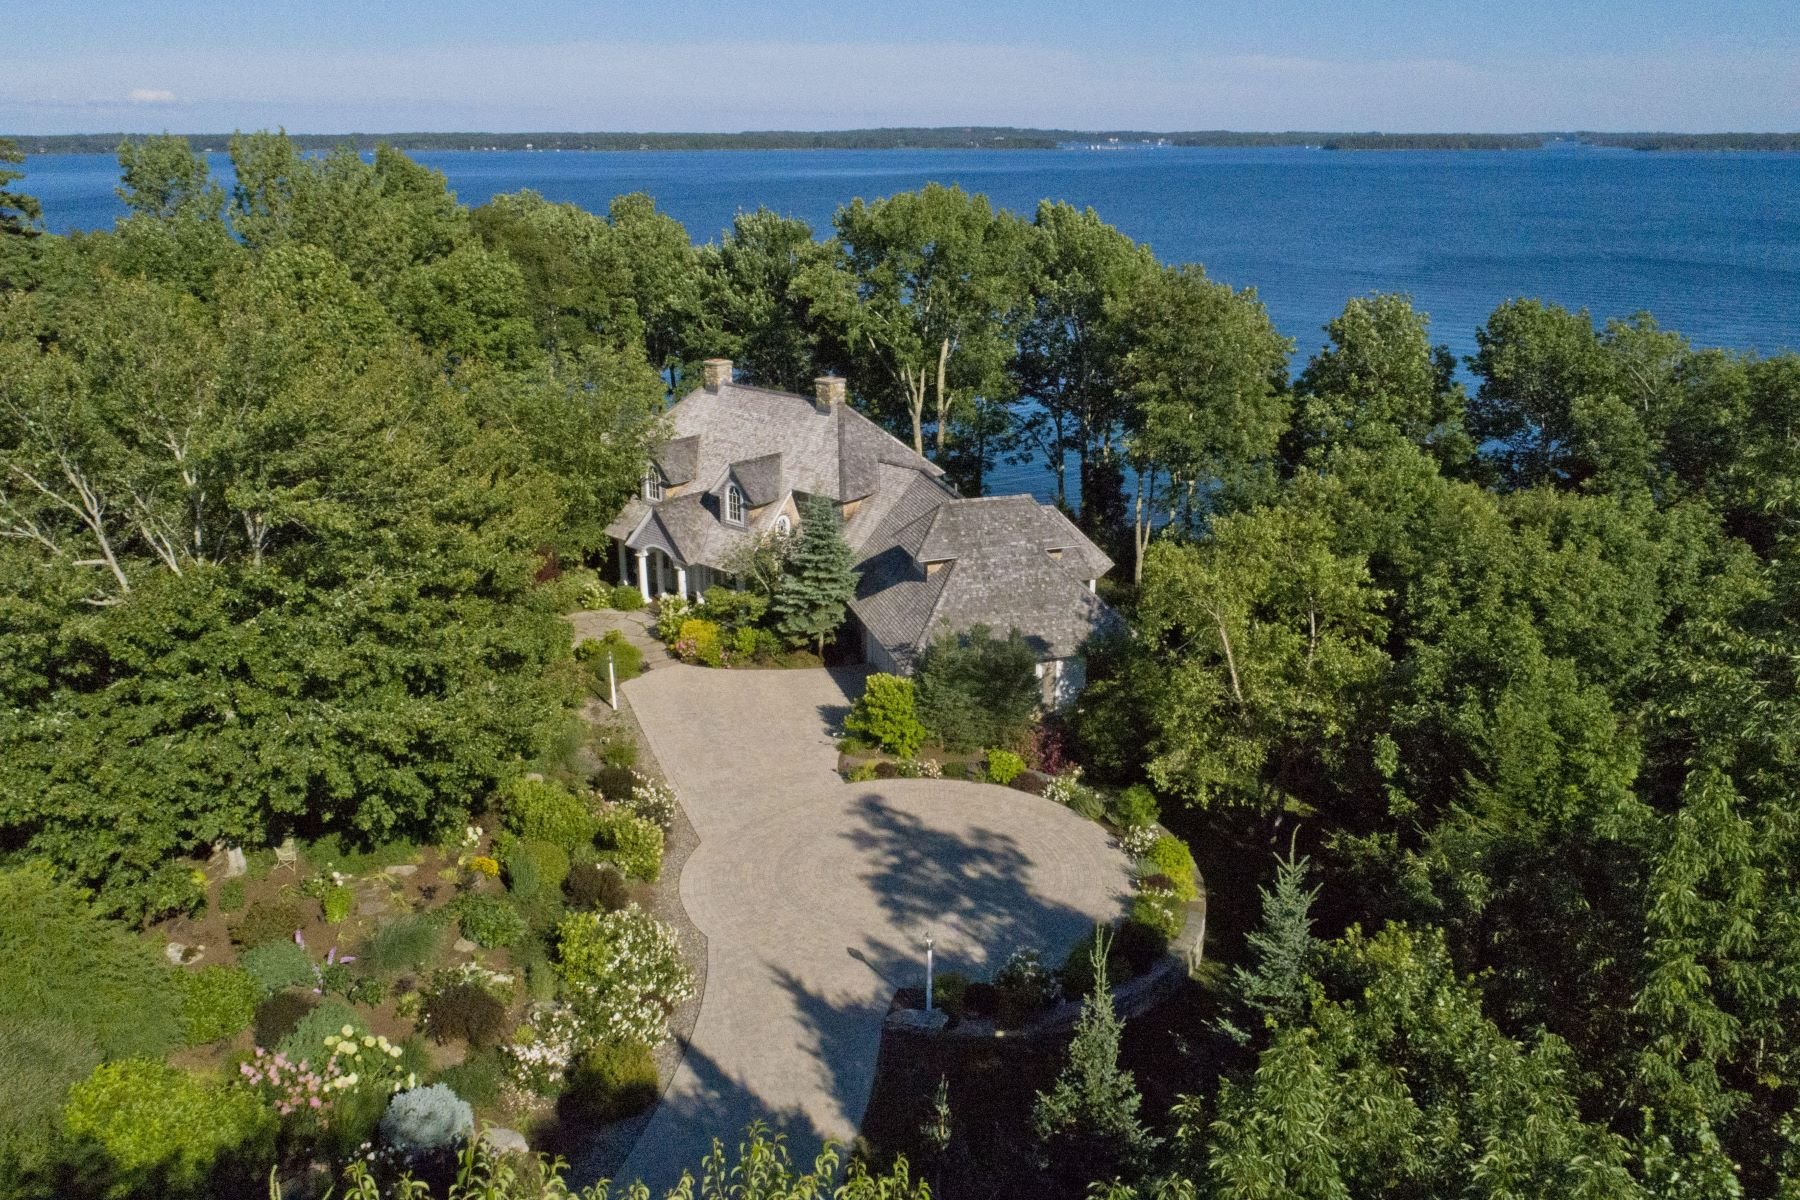 Single Family Homes for Sale at 54 Catching Cove Road Northport, Maine 04849 United States